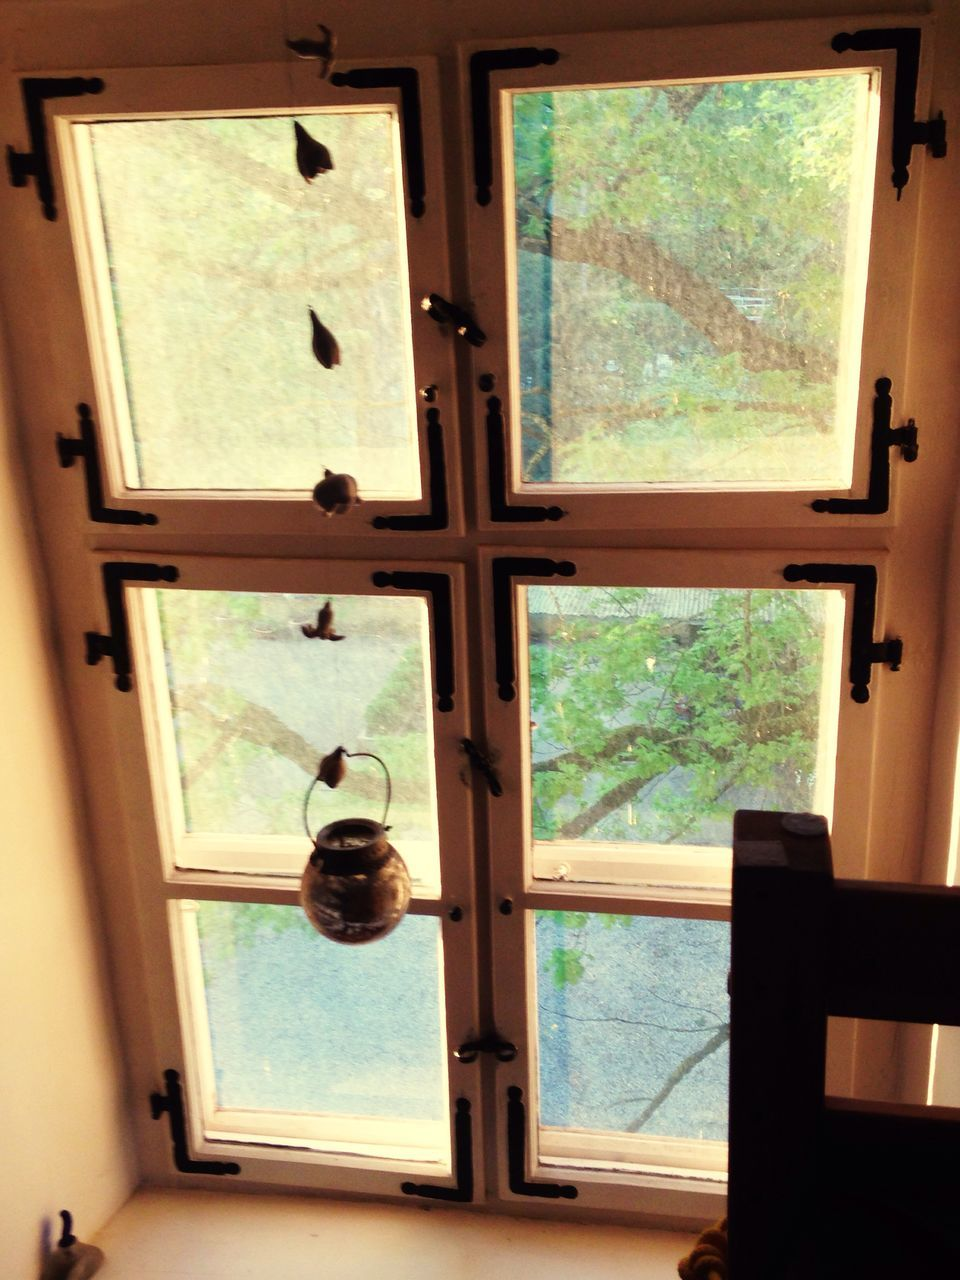 window, door, indoors, day, safety, no people, home interior, tree, close-up, animal themes, nature, mammal